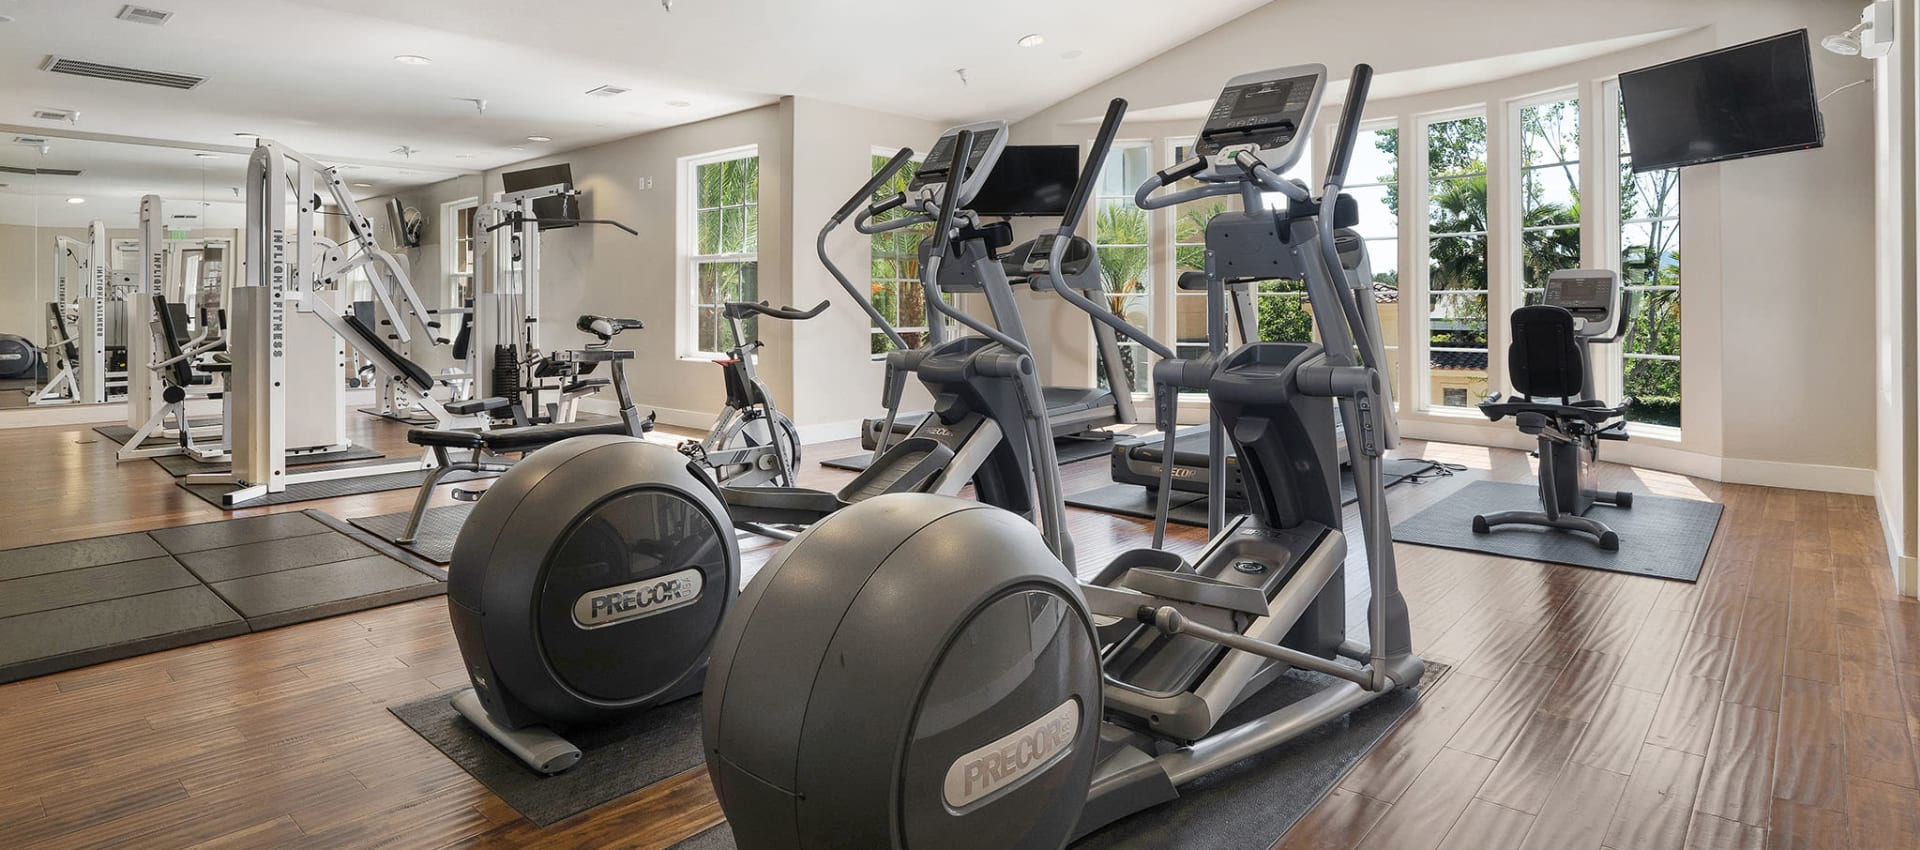 Fitness center at Park Central in Concord, California